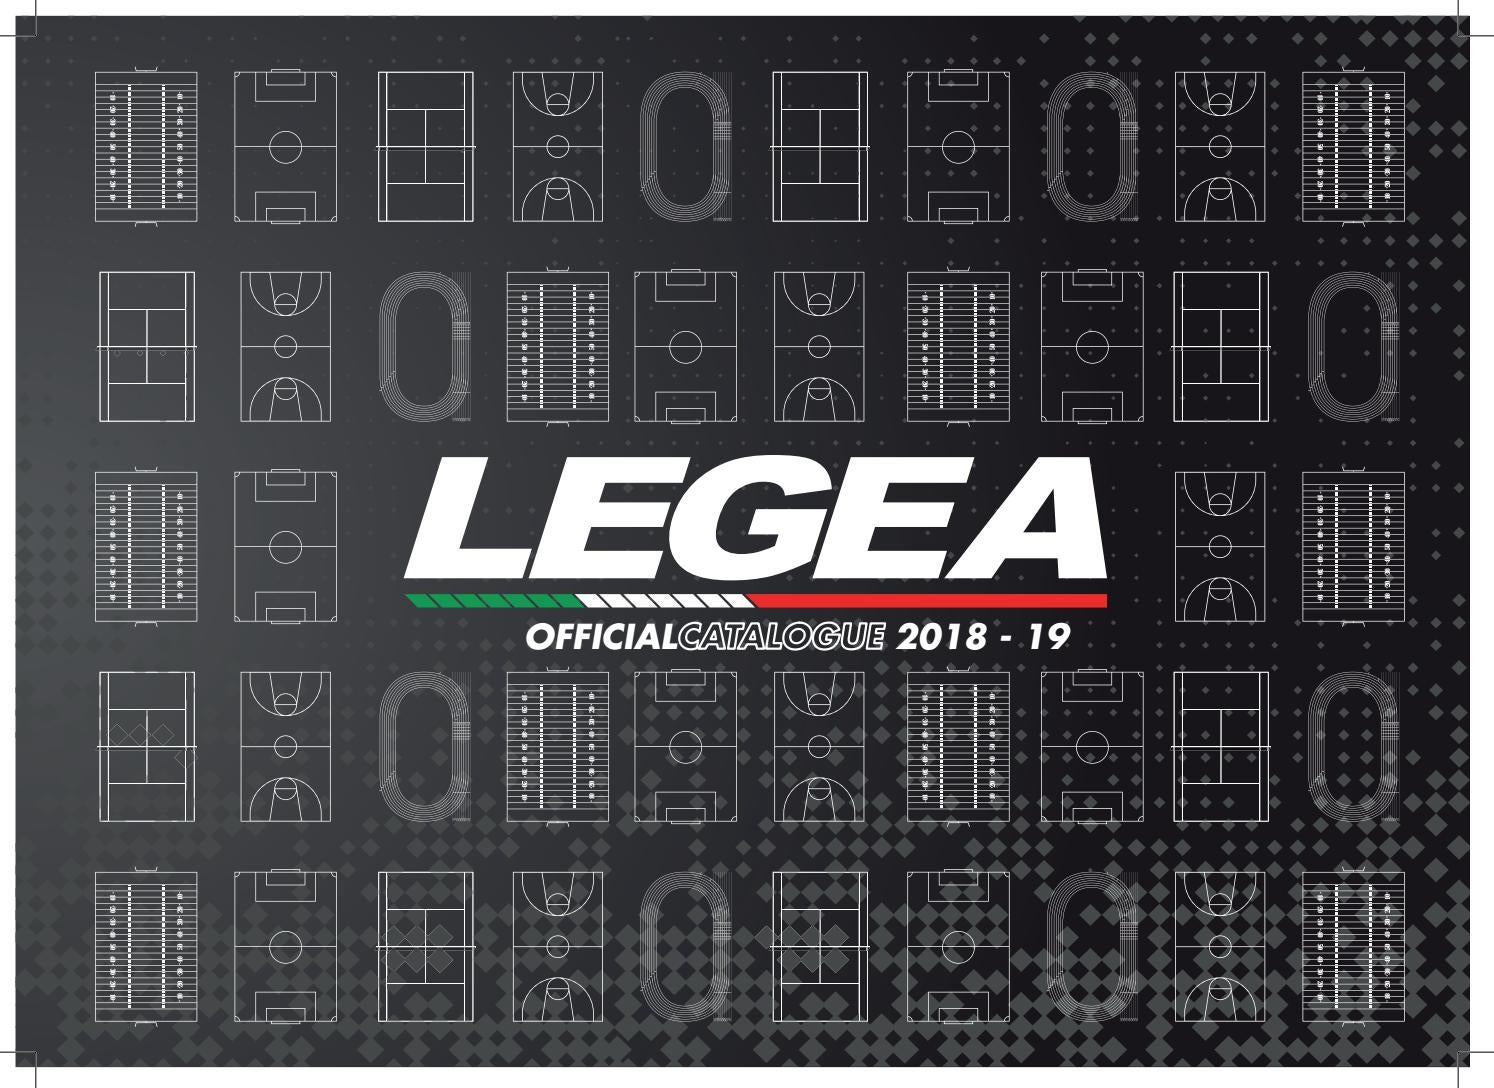 Paspartoe Hema Catalogo Legea 2018 By Teamwear Shop Issuu